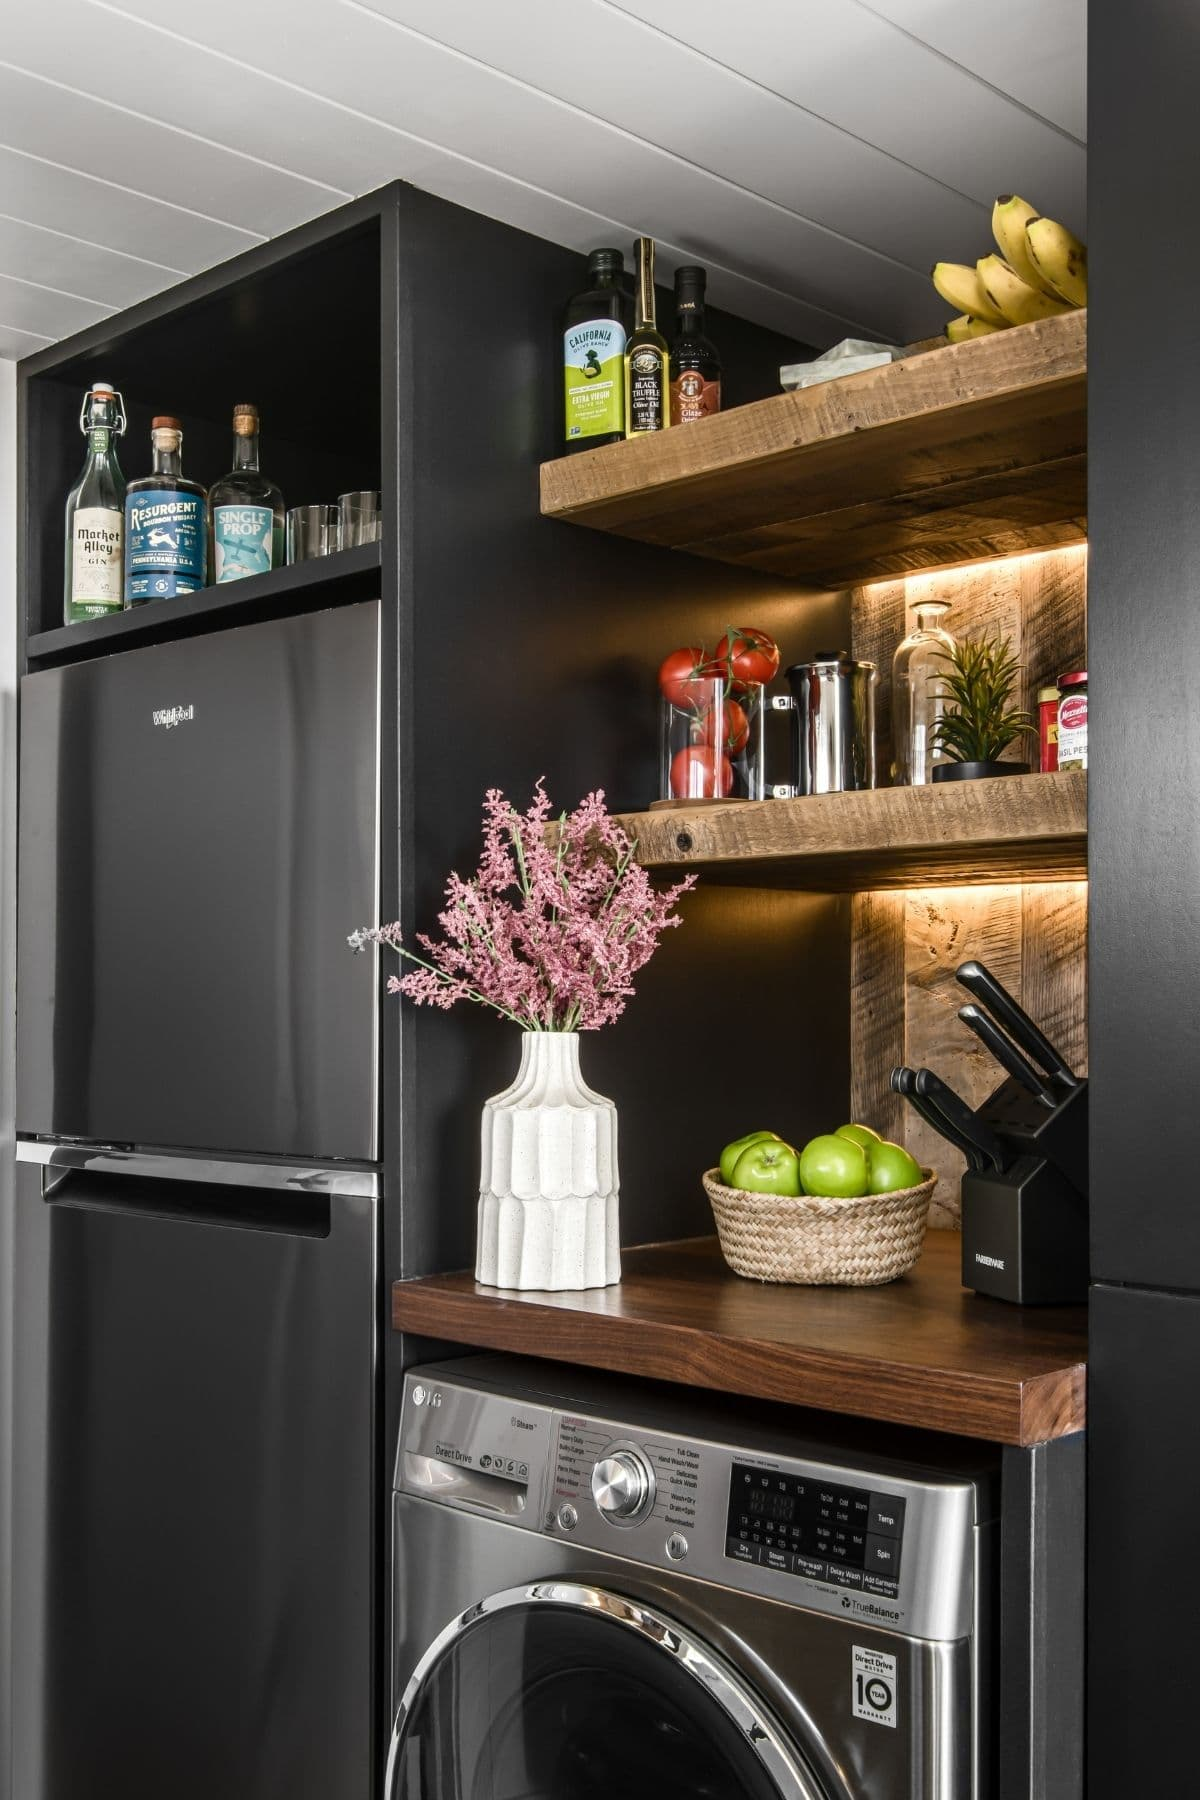 Black refrigerator in black cabinets by washer